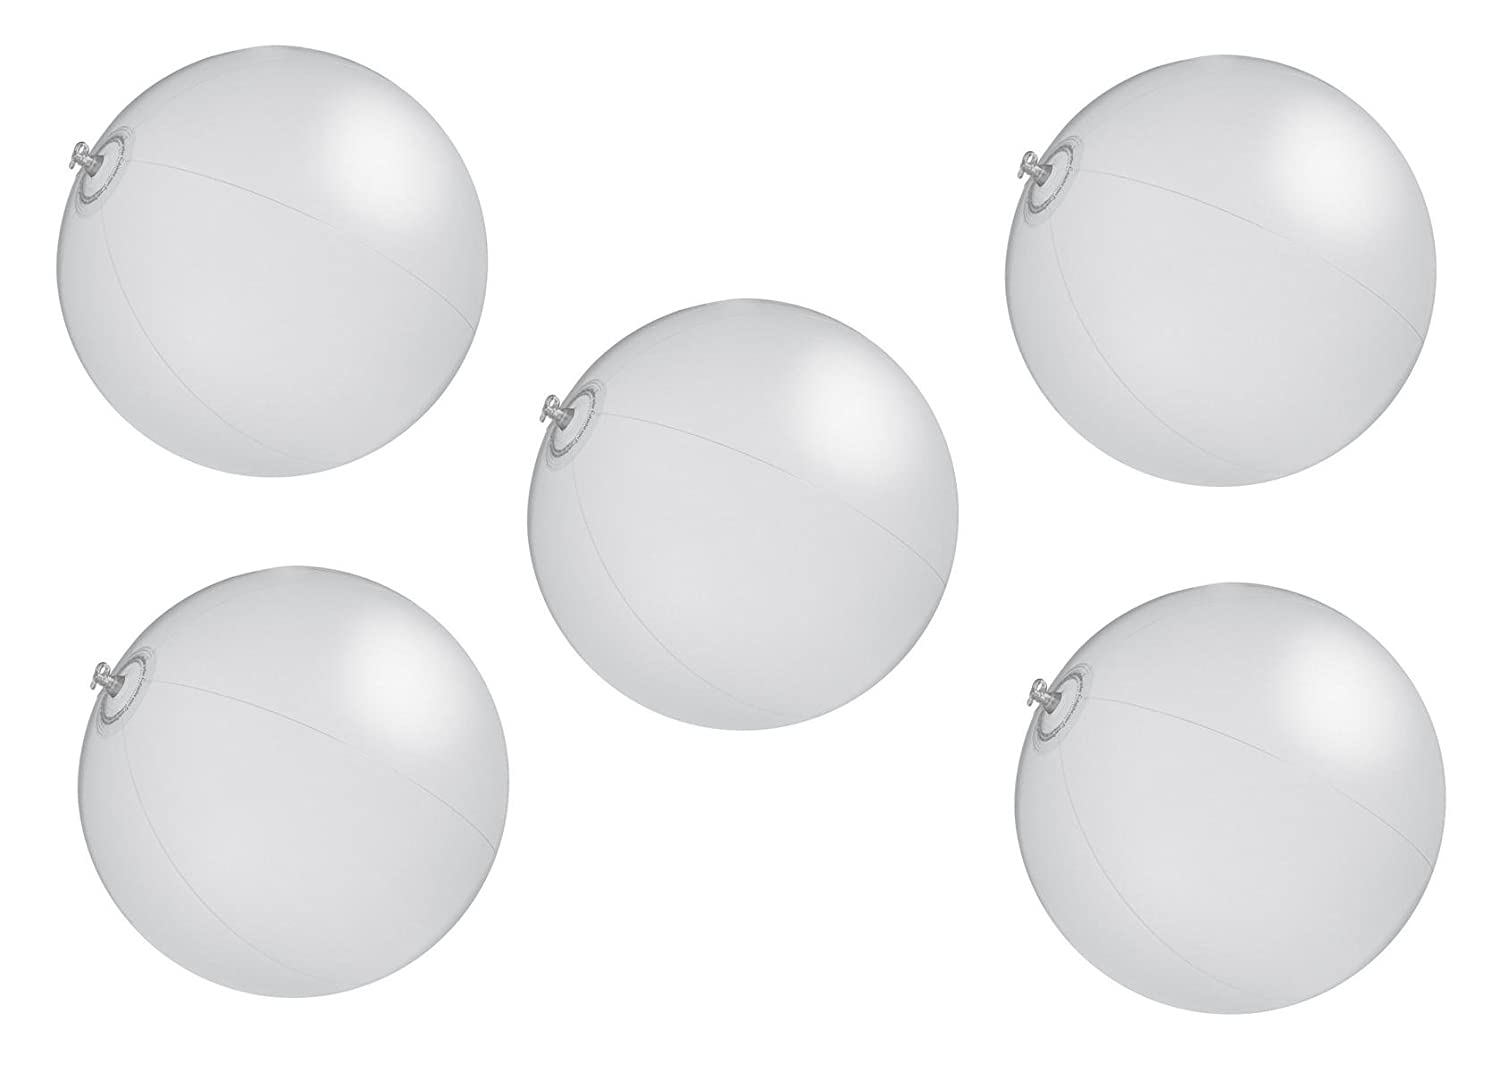 5 x playa pelota/agua/Color transparente color blanco: Amazon.es ...